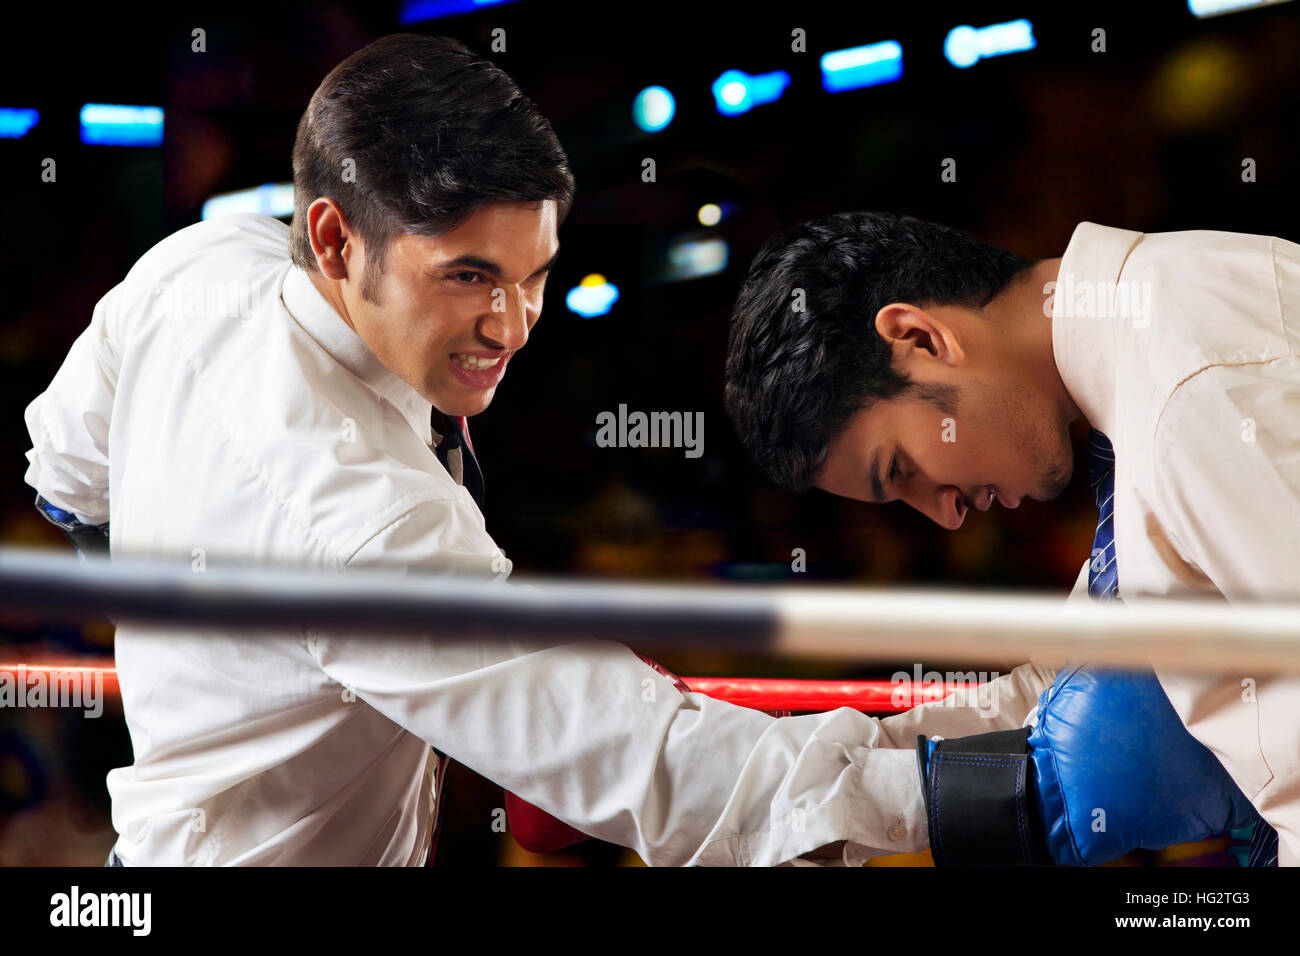 Businessmen fighting in boxing ring - Stock Image